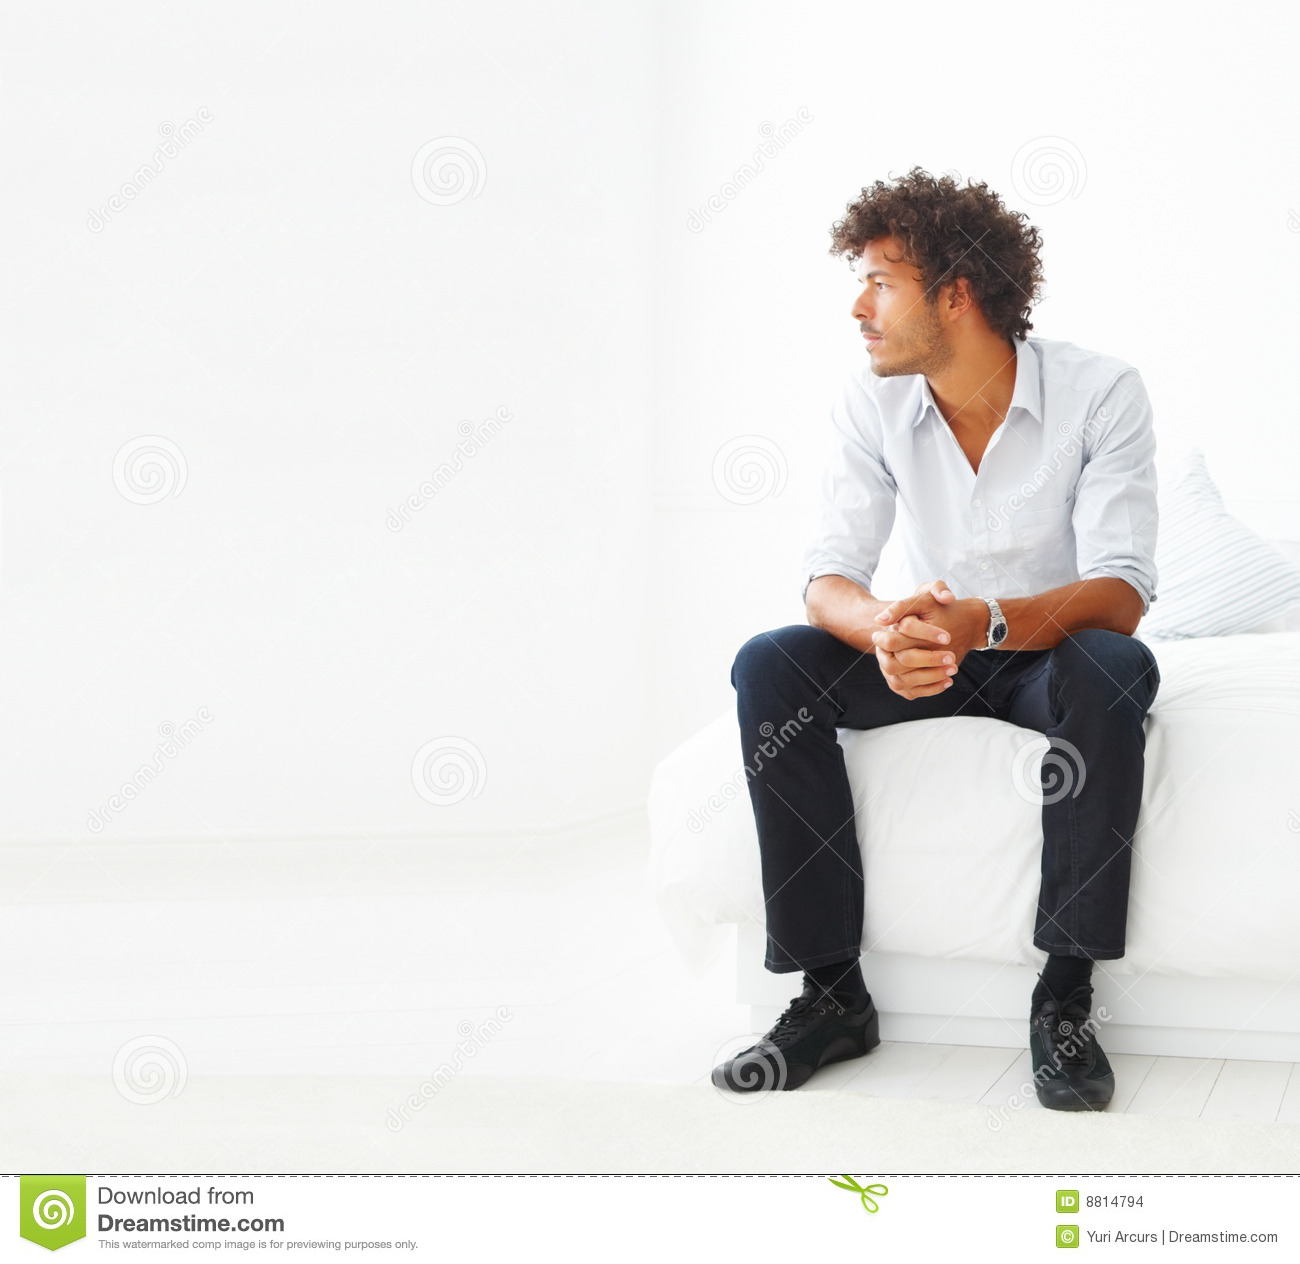 young-business-man-sitting-8814794.jpg